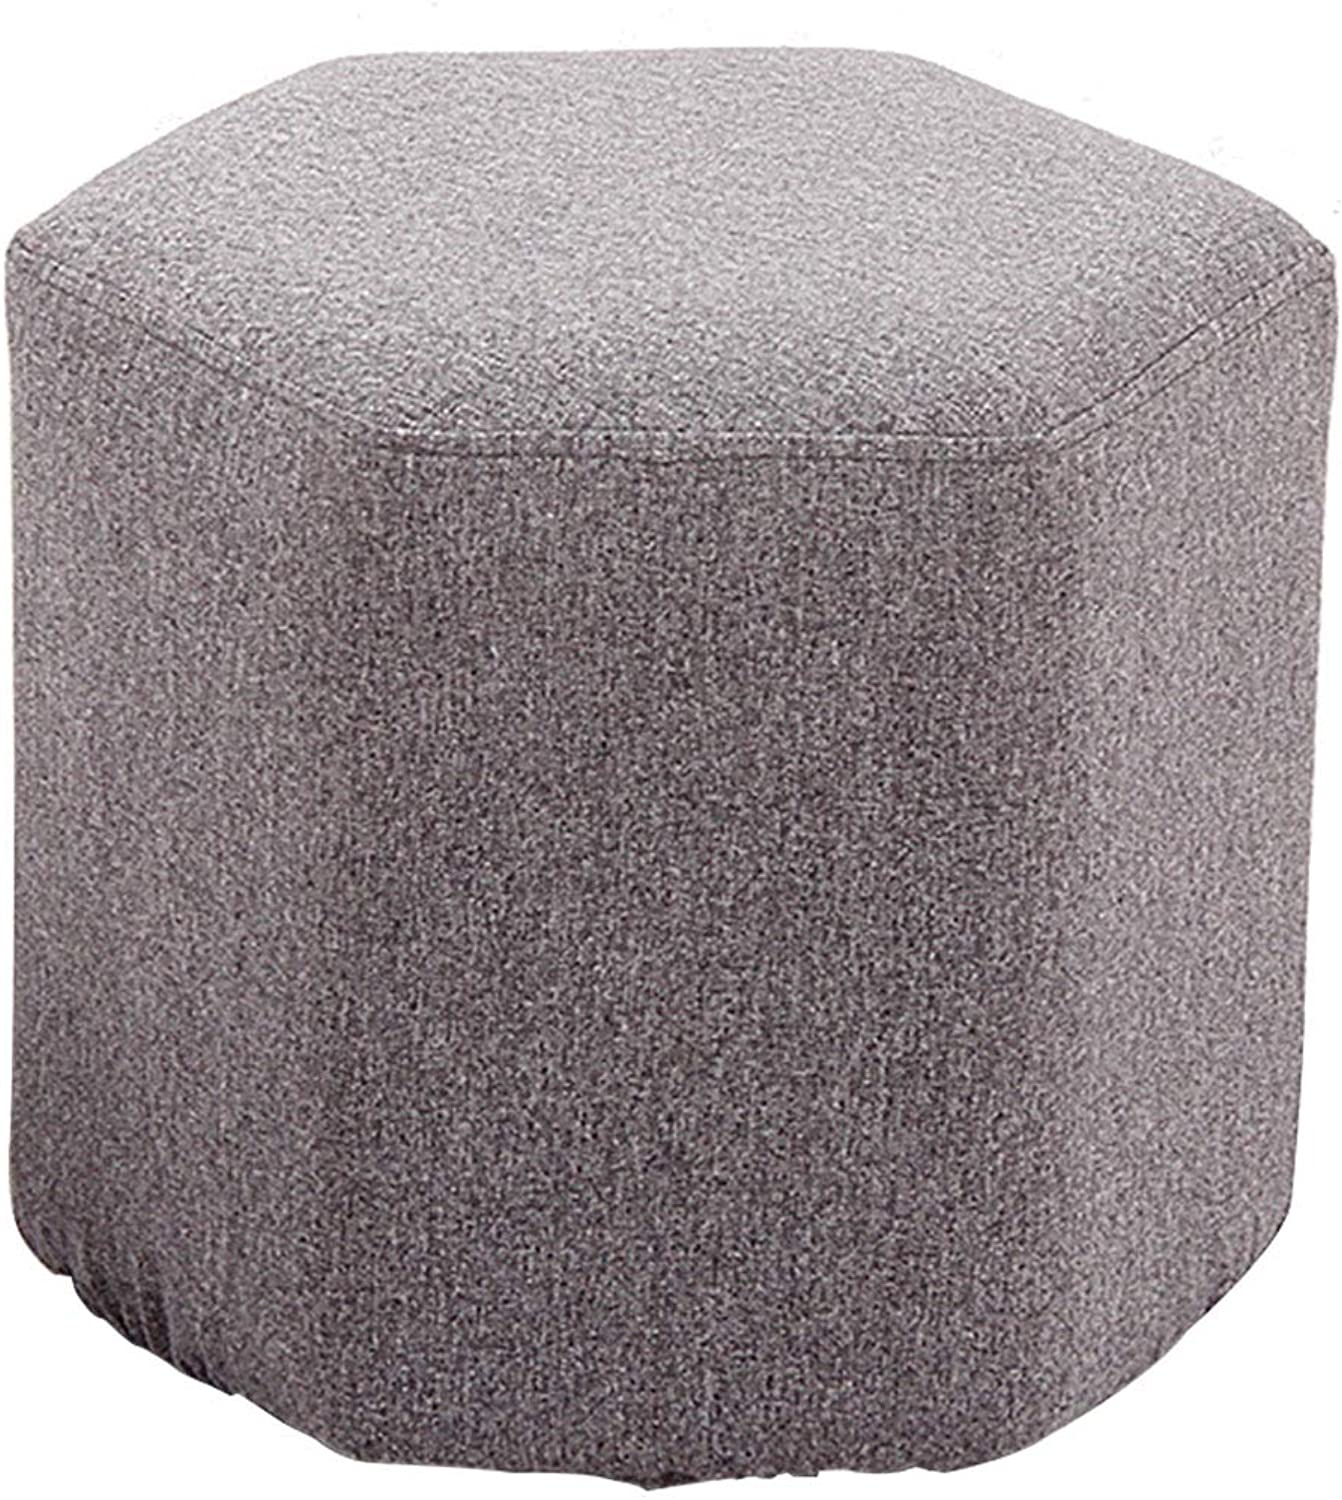 Cute Stool Creative Stool, Strong Load Capacity, Simple Design, Linen Fabric, Suitable for Everyone, Suitable for Living Room, color Choice, 40x40cm